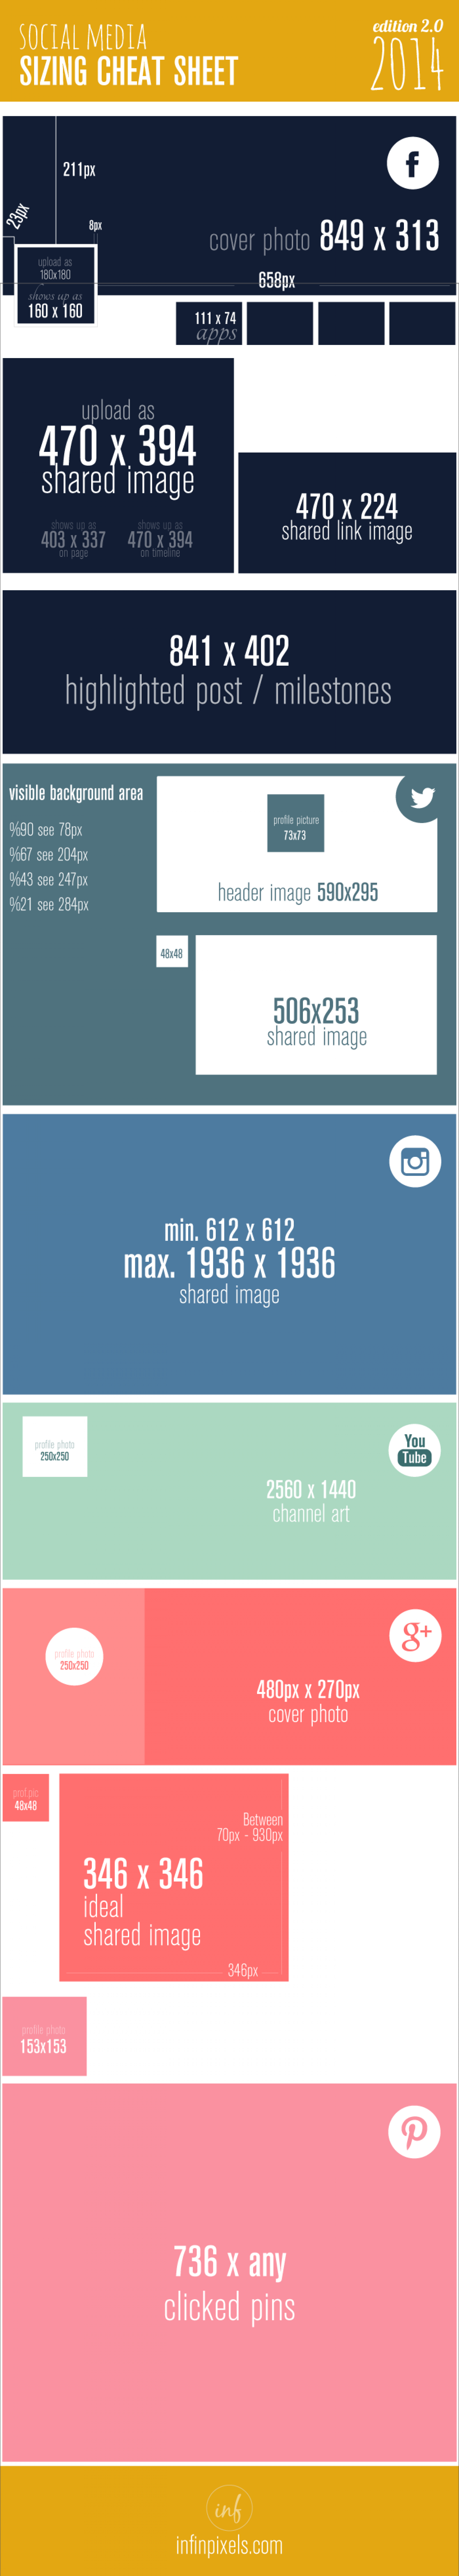 Social Media Sizing Cheat Sheet Edition 2.0 2014 Infographic